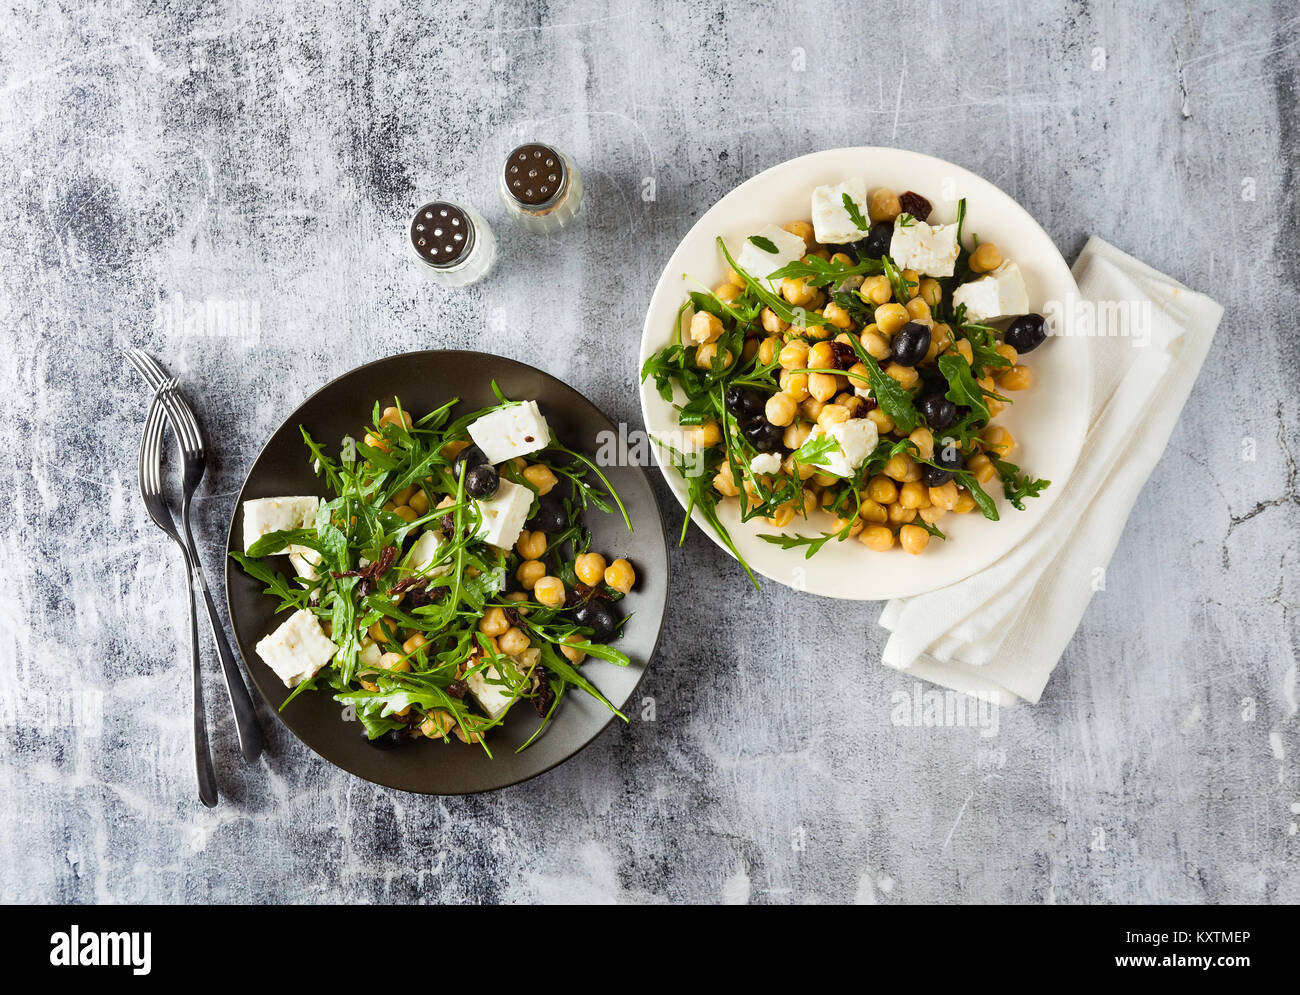 two plates of vegetable salad with chickpeas, arugula, feta cheese or tofu and black olives on a natural stone background. Stock Photo